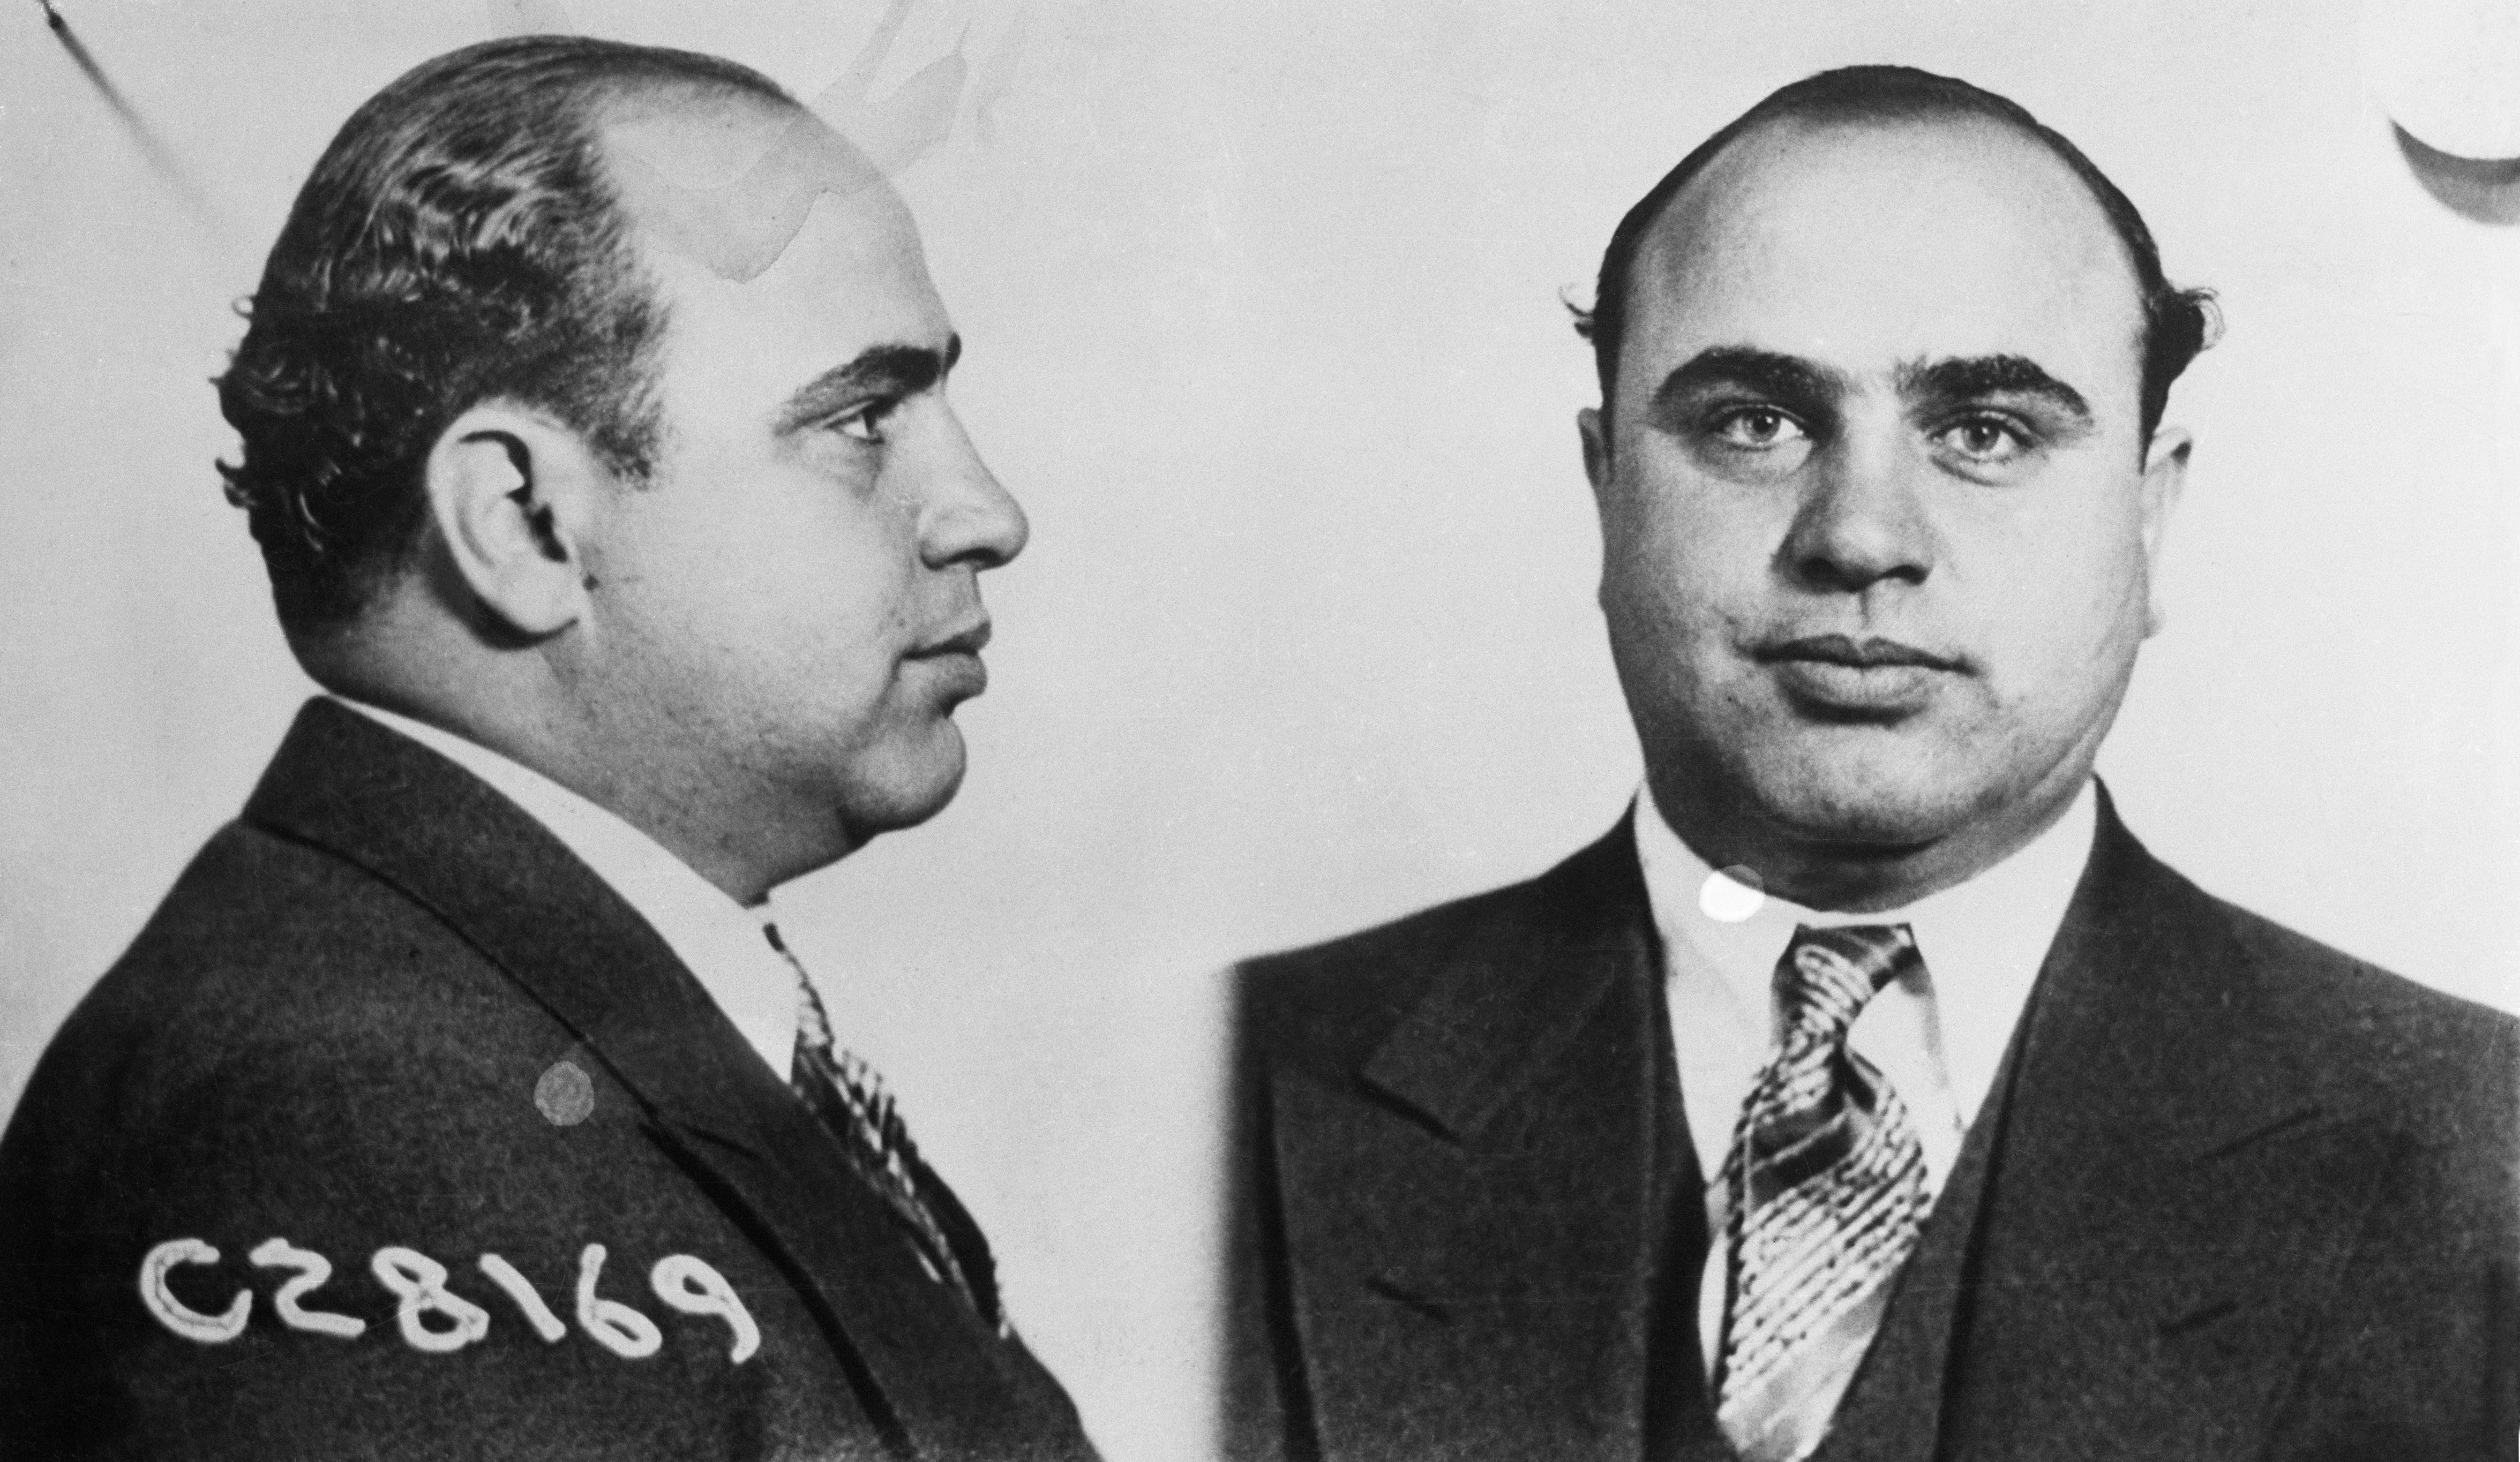 mugshot of gangster al capone al capone and prohibition pictures  al capone alphonse capone scarface organized crime chicago 1920s gambling